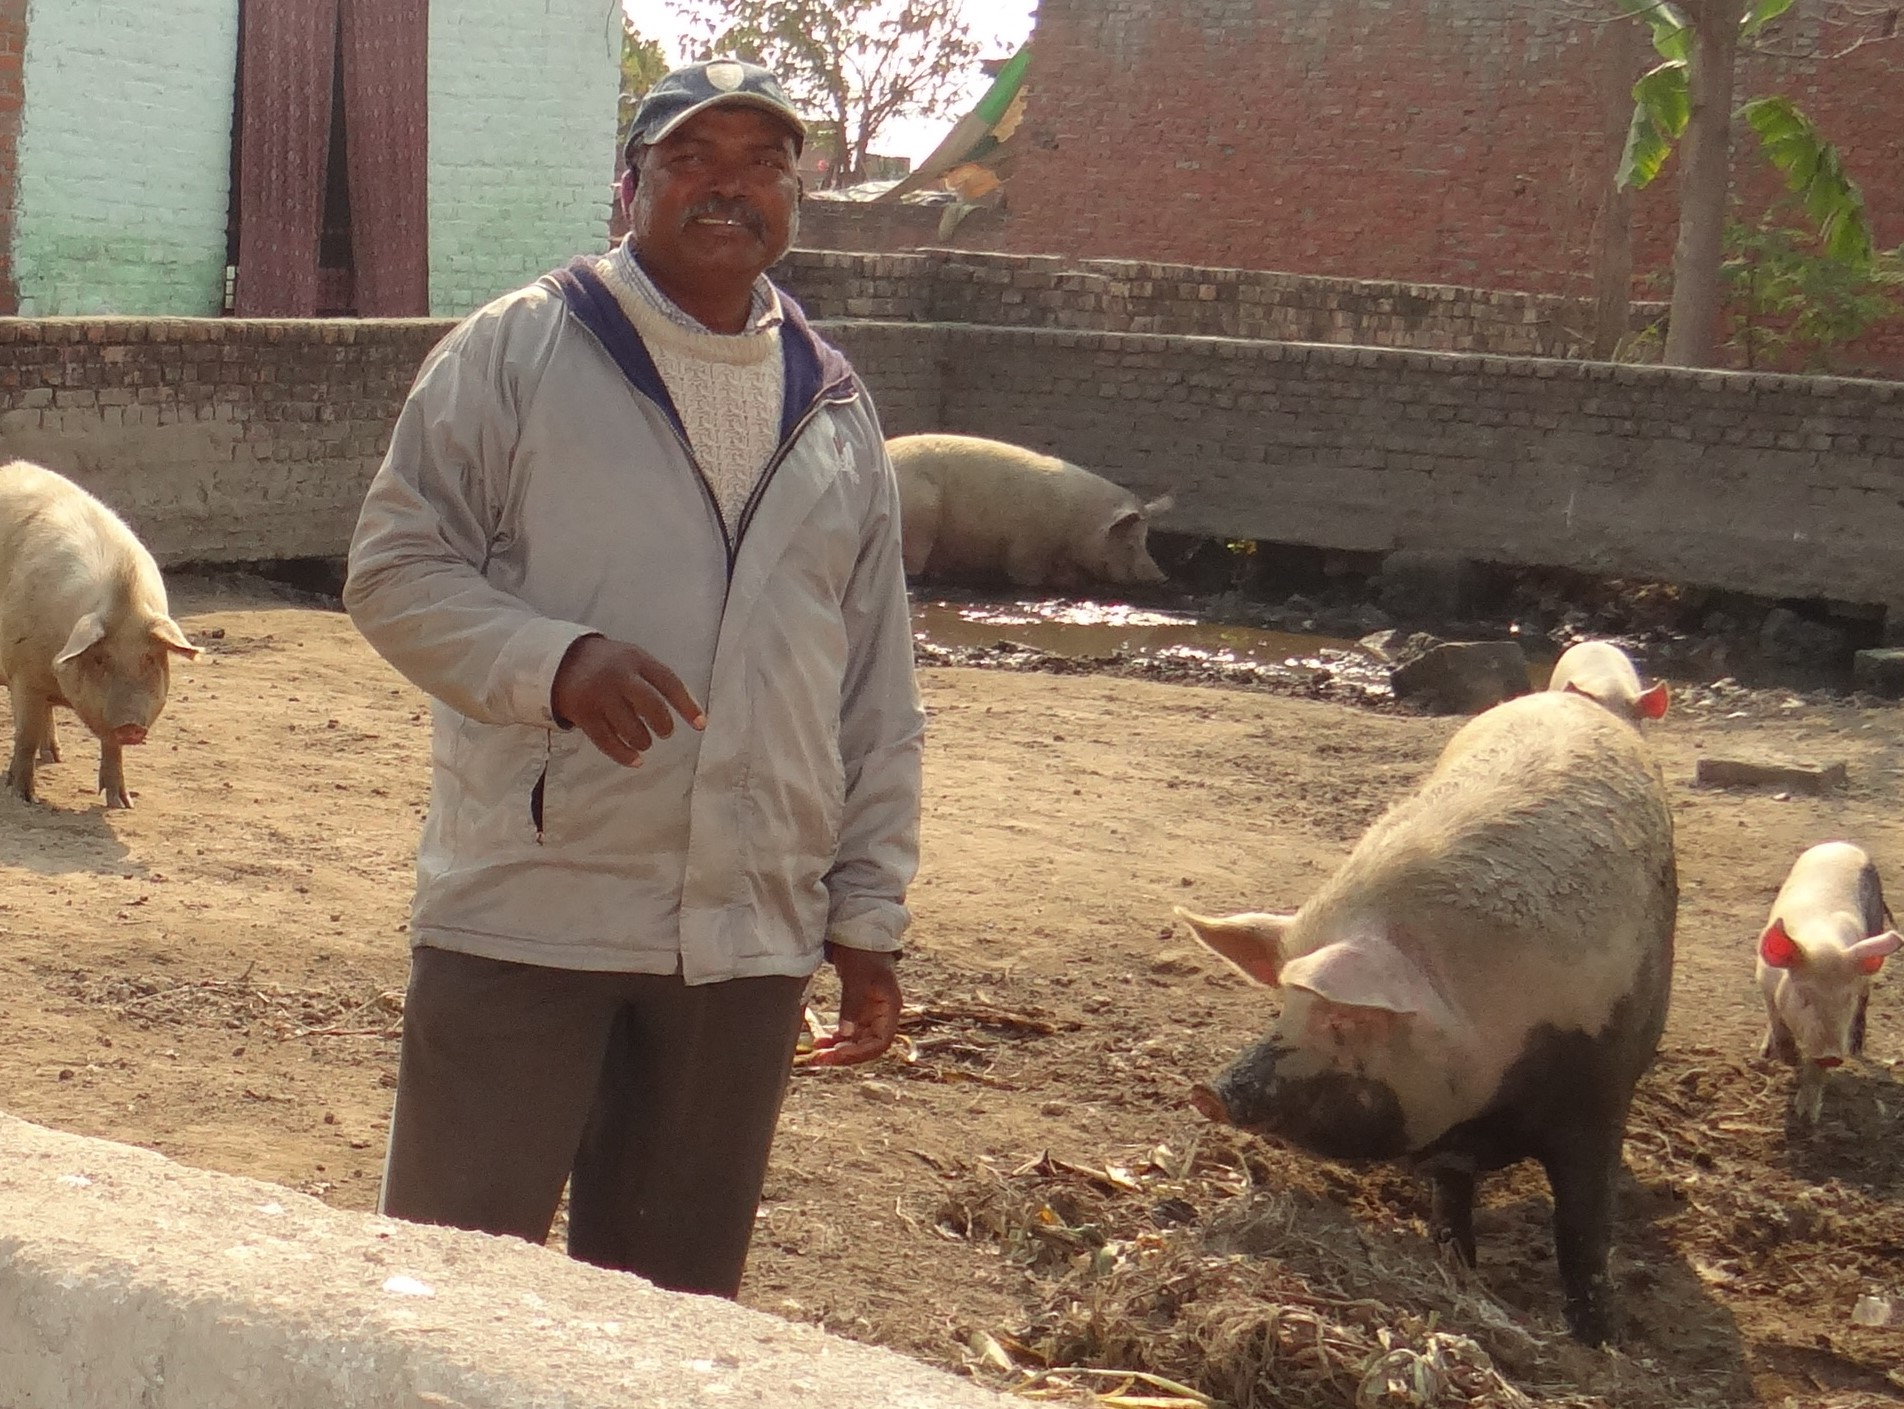 Aman Lakra – concentrates on livestock rearing for farm integration and increases farm revenues by four times